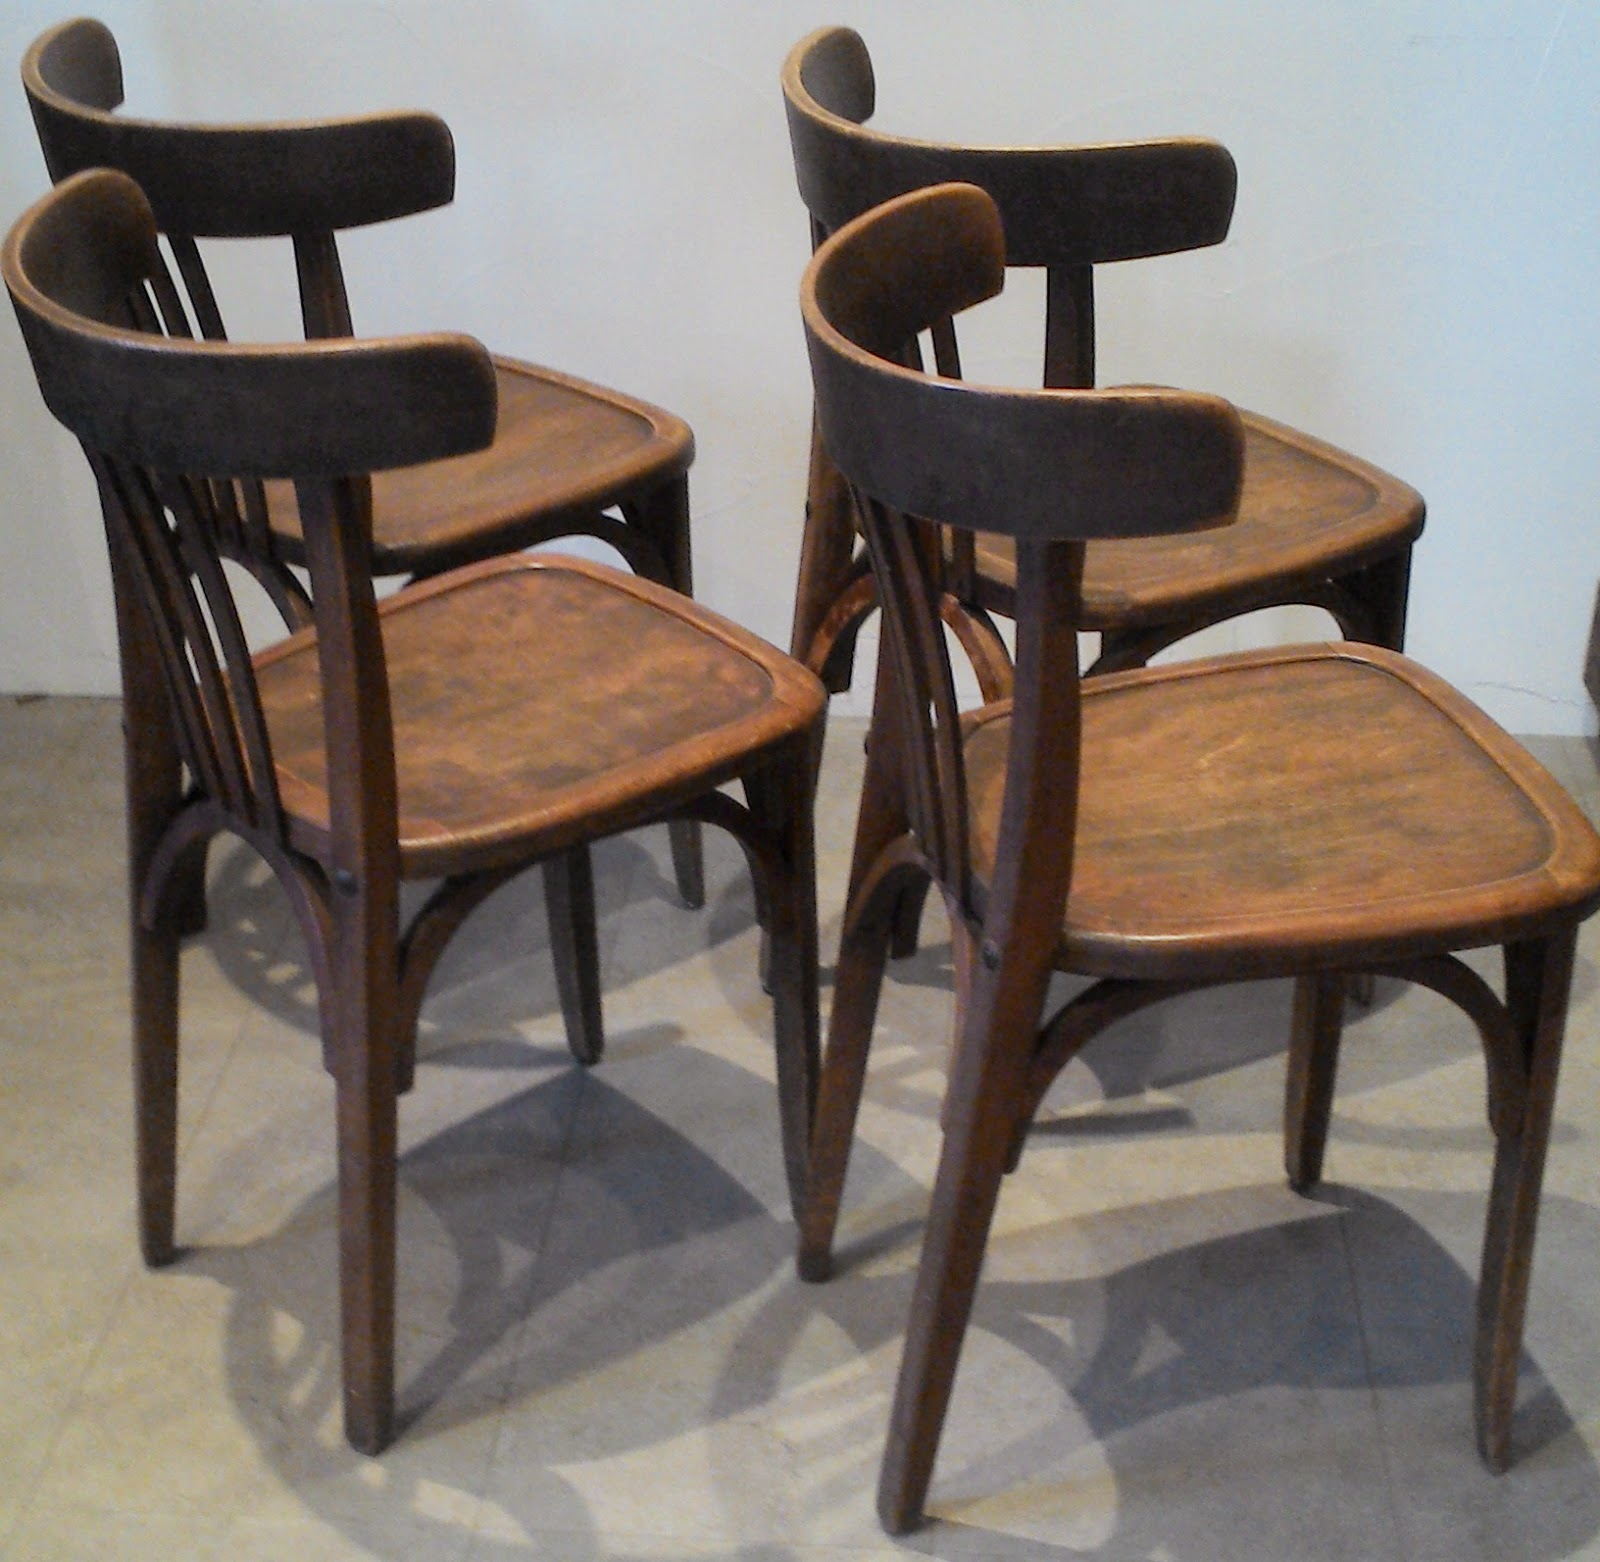 Table Bistrot Pied Fonte Beautiful Cool Anciennes Chaises Bistrot Bar Style Thonnet